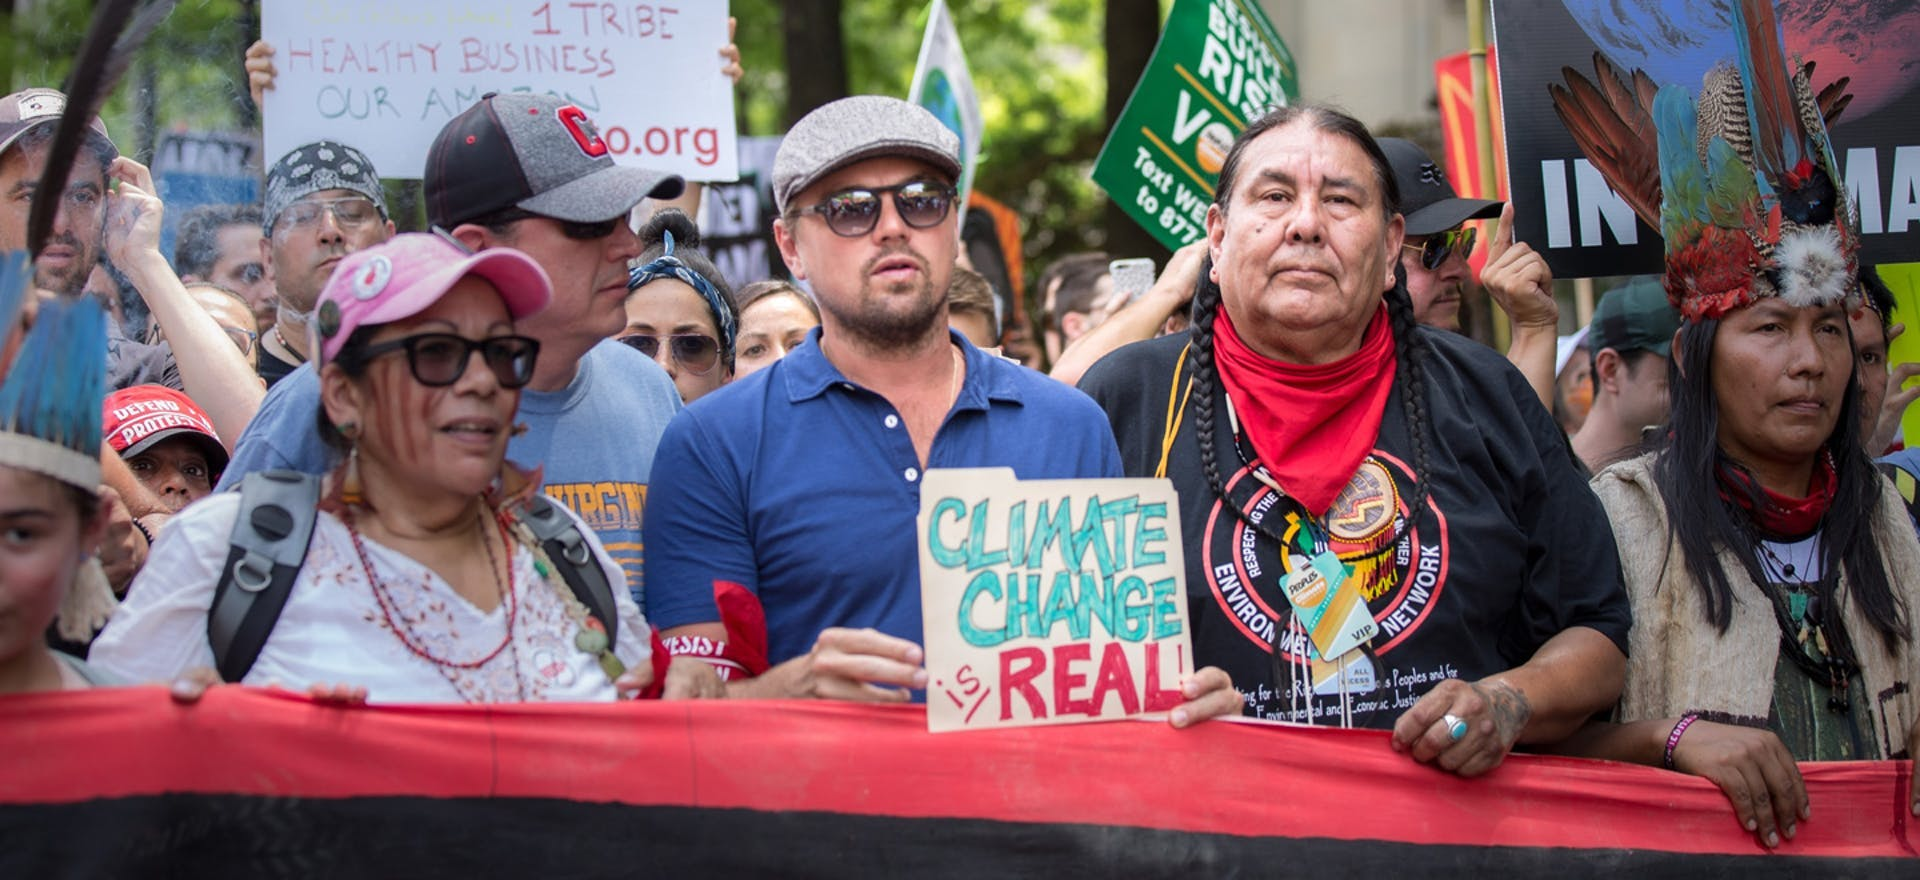 Leonardo DiCaprio marches alongside indigenous leaders for climate justice